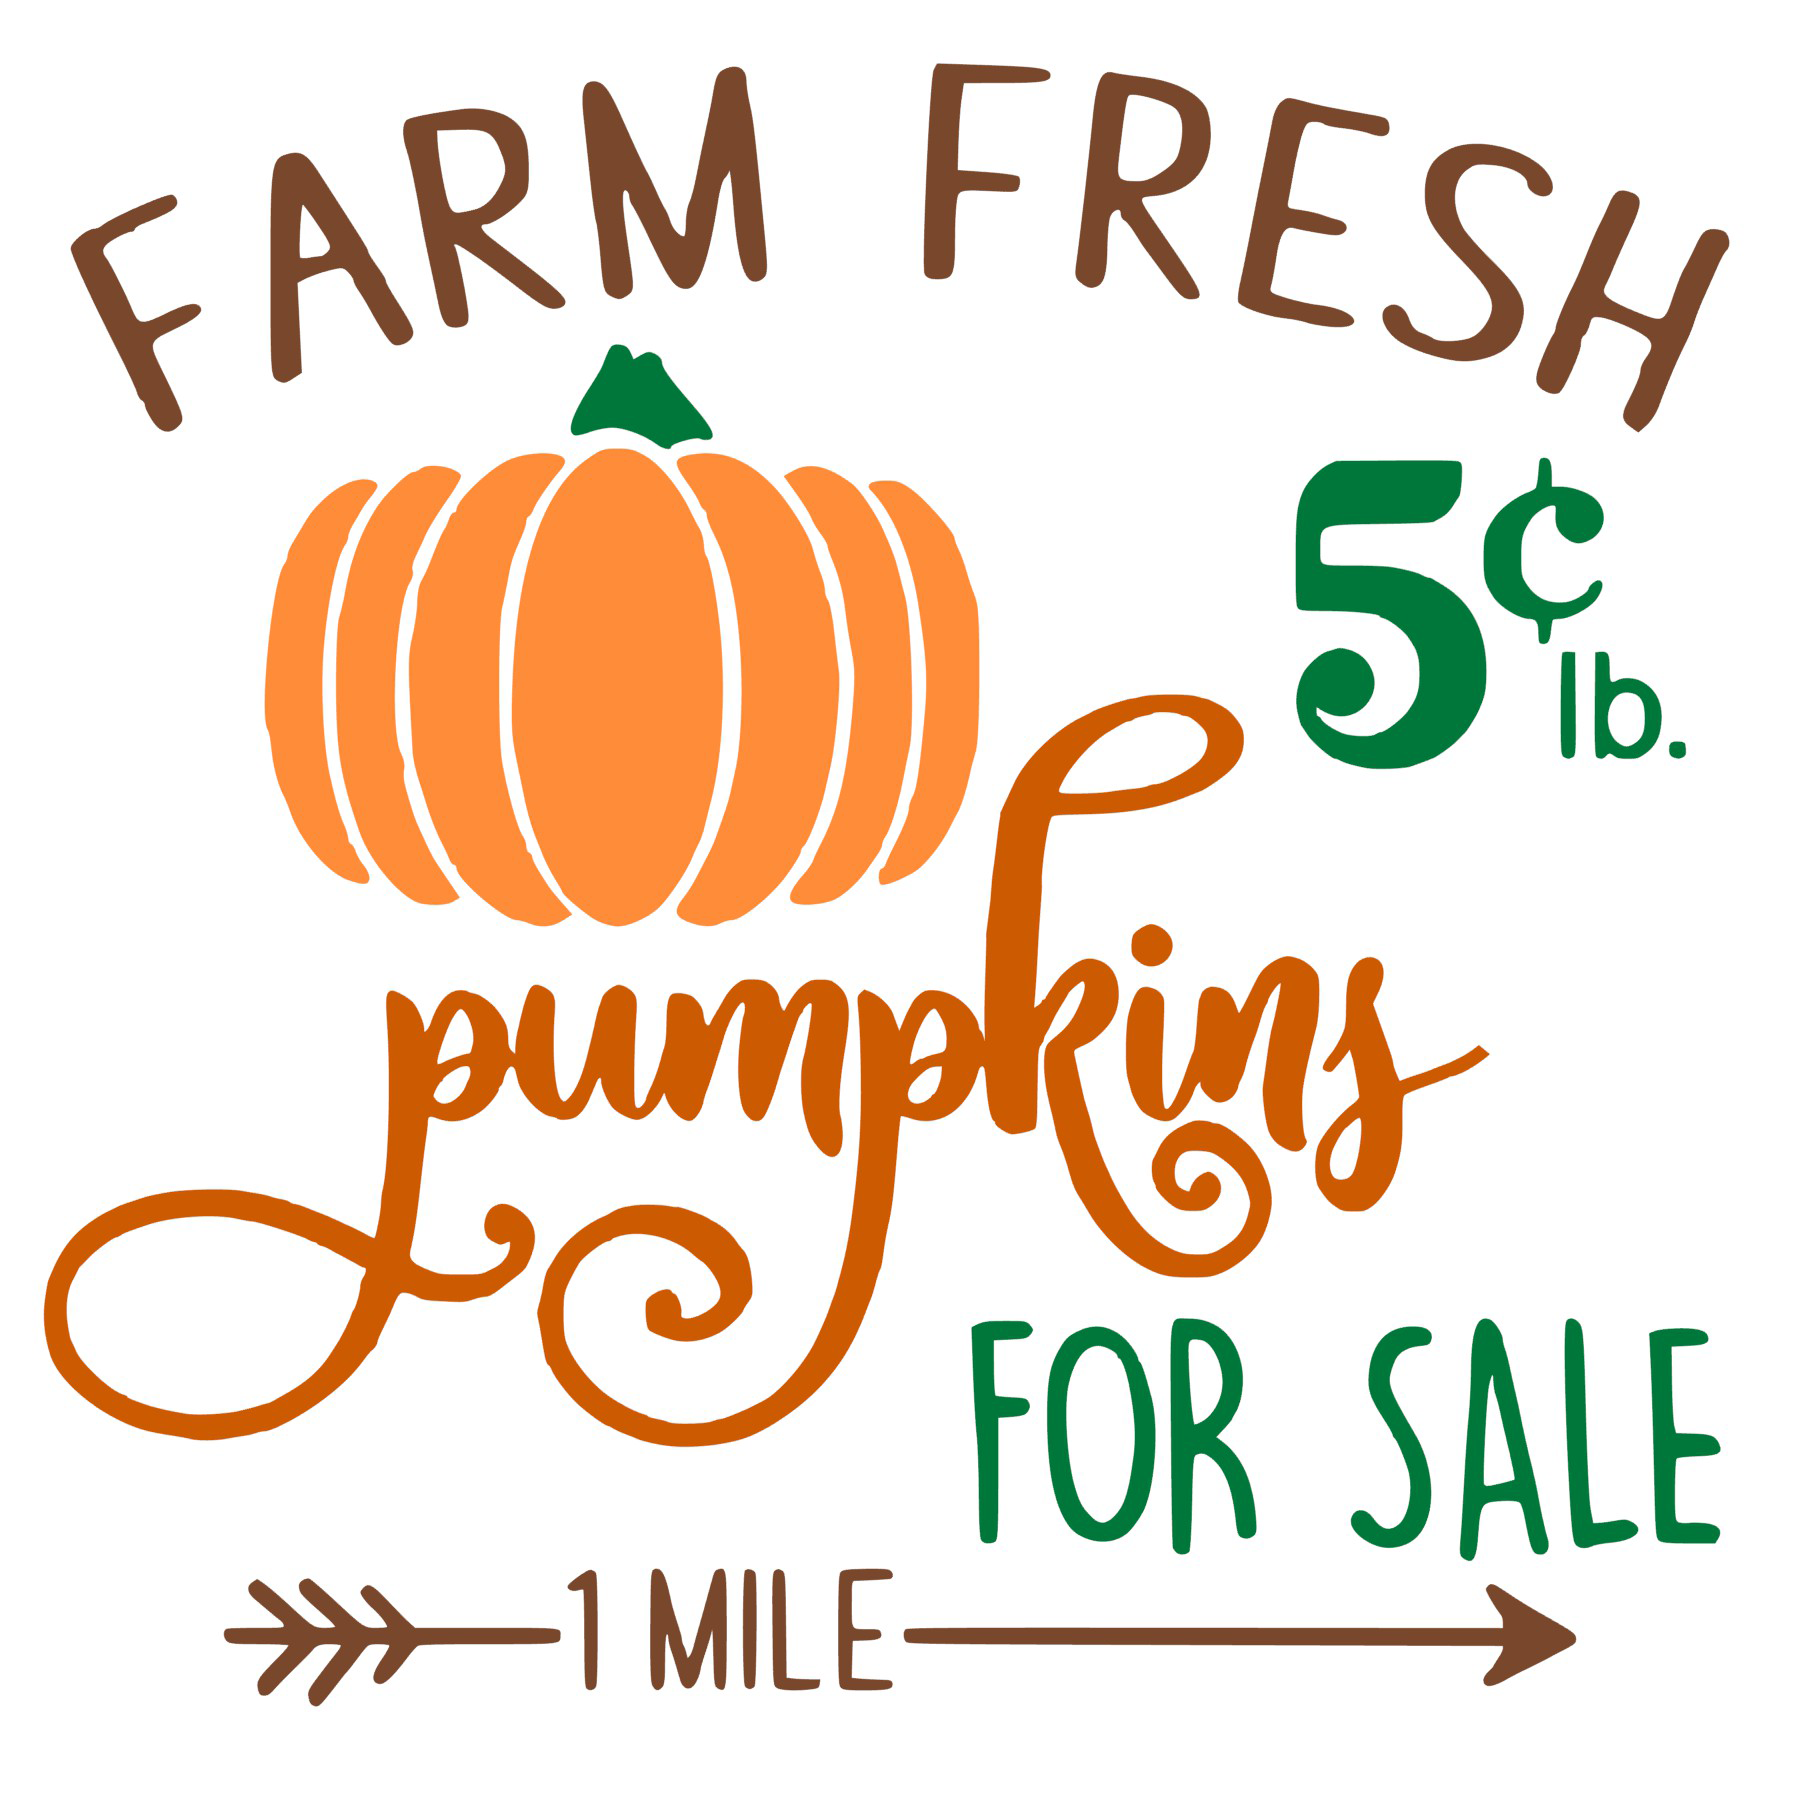 Cutest Pumpkin In The Patch Png Images With Transparent Etsy Cute Pumpkin Patches Png Images